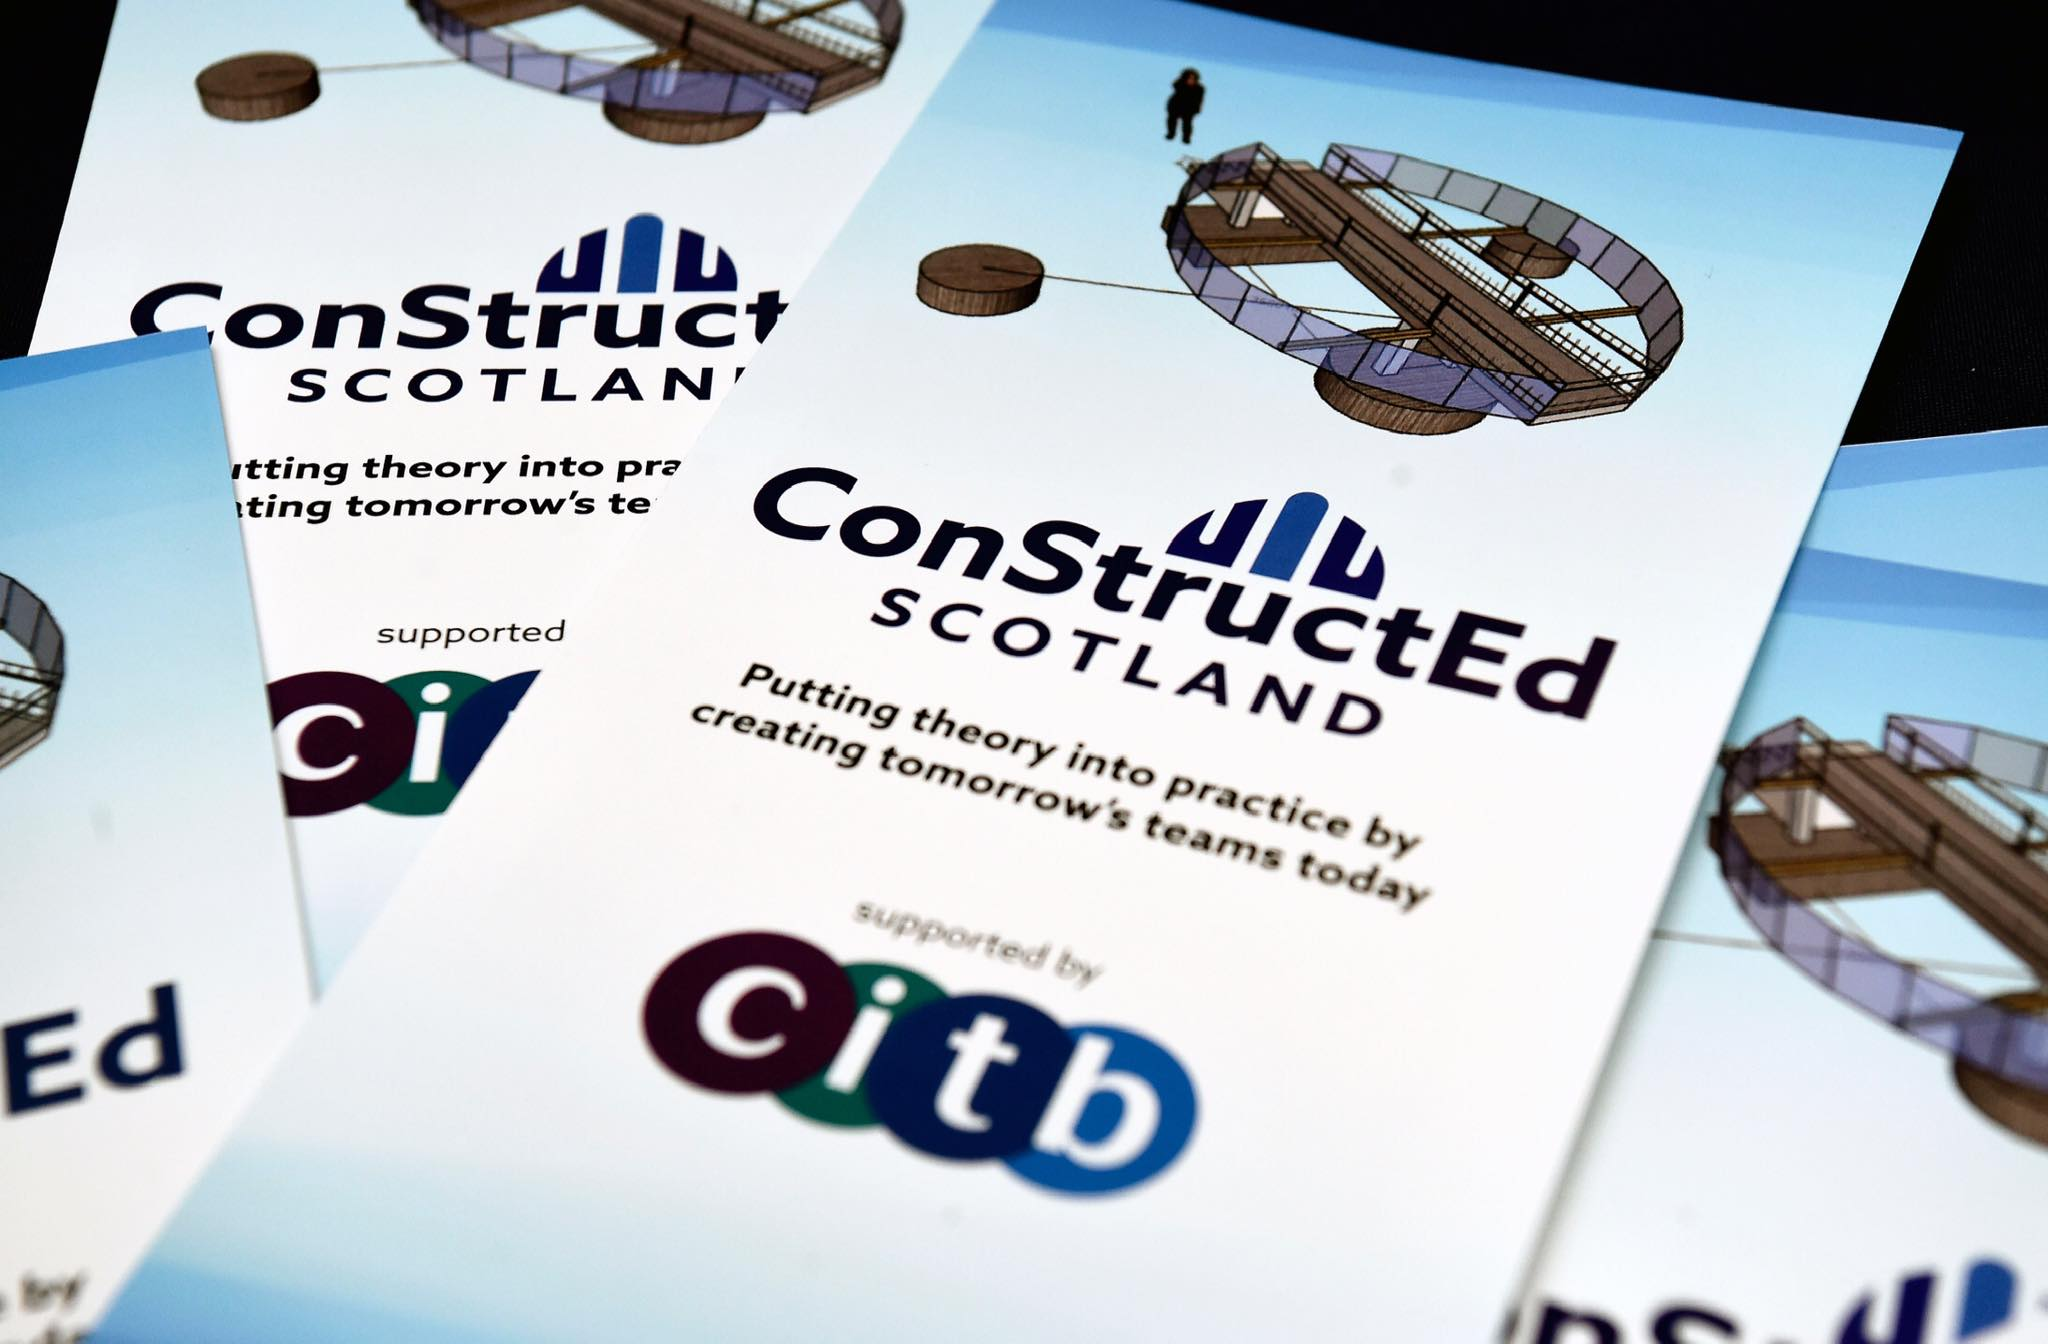 ConStructed Scotland leaflets